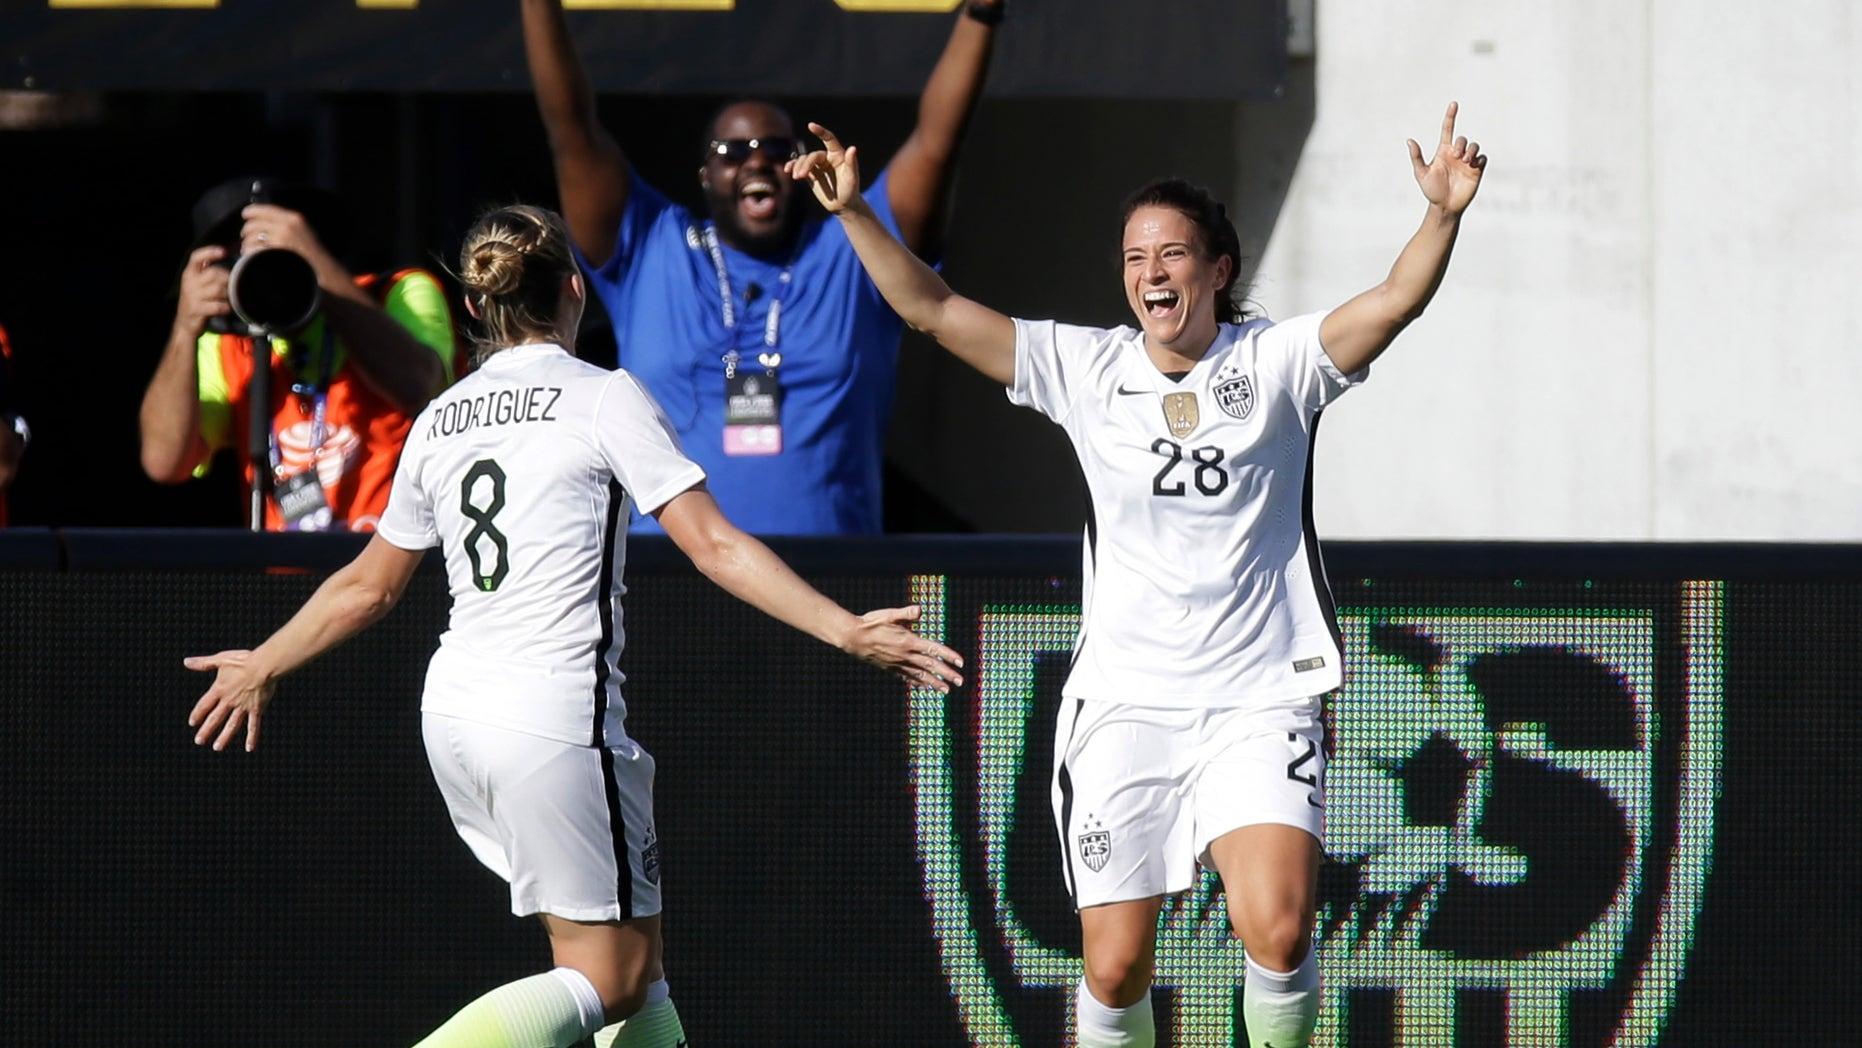 United States' Stephanie McCaffrey (28) celebrates her goal against Brazil with teammate Amy Rodriguez (8) during the second half of an international friendly soccer match Sunday, Oct. 25, 2015, in Orlando, Fla. The United States won 3-1. (AP Photo/John Raoux)